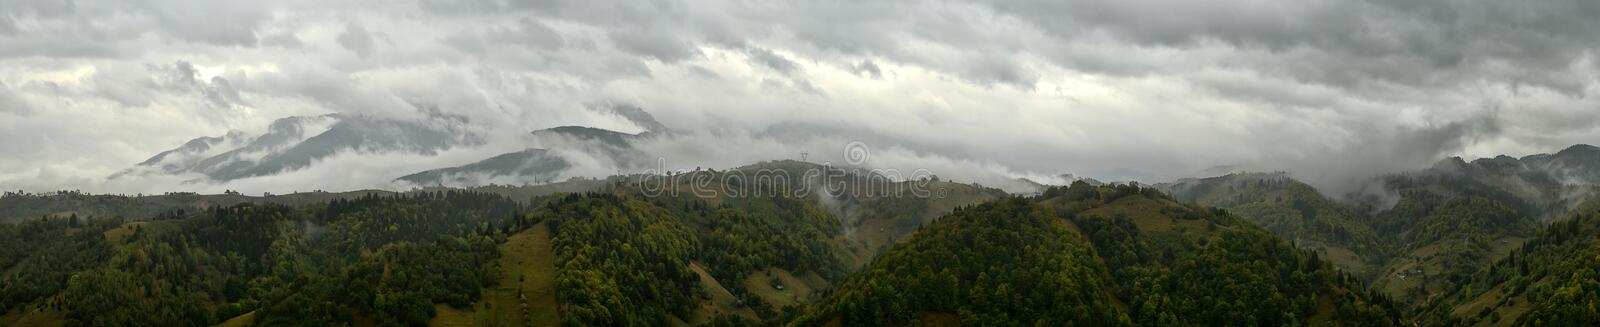 Download Cloudy mountains stock image. Image of outdoor, cloudy - 28411029